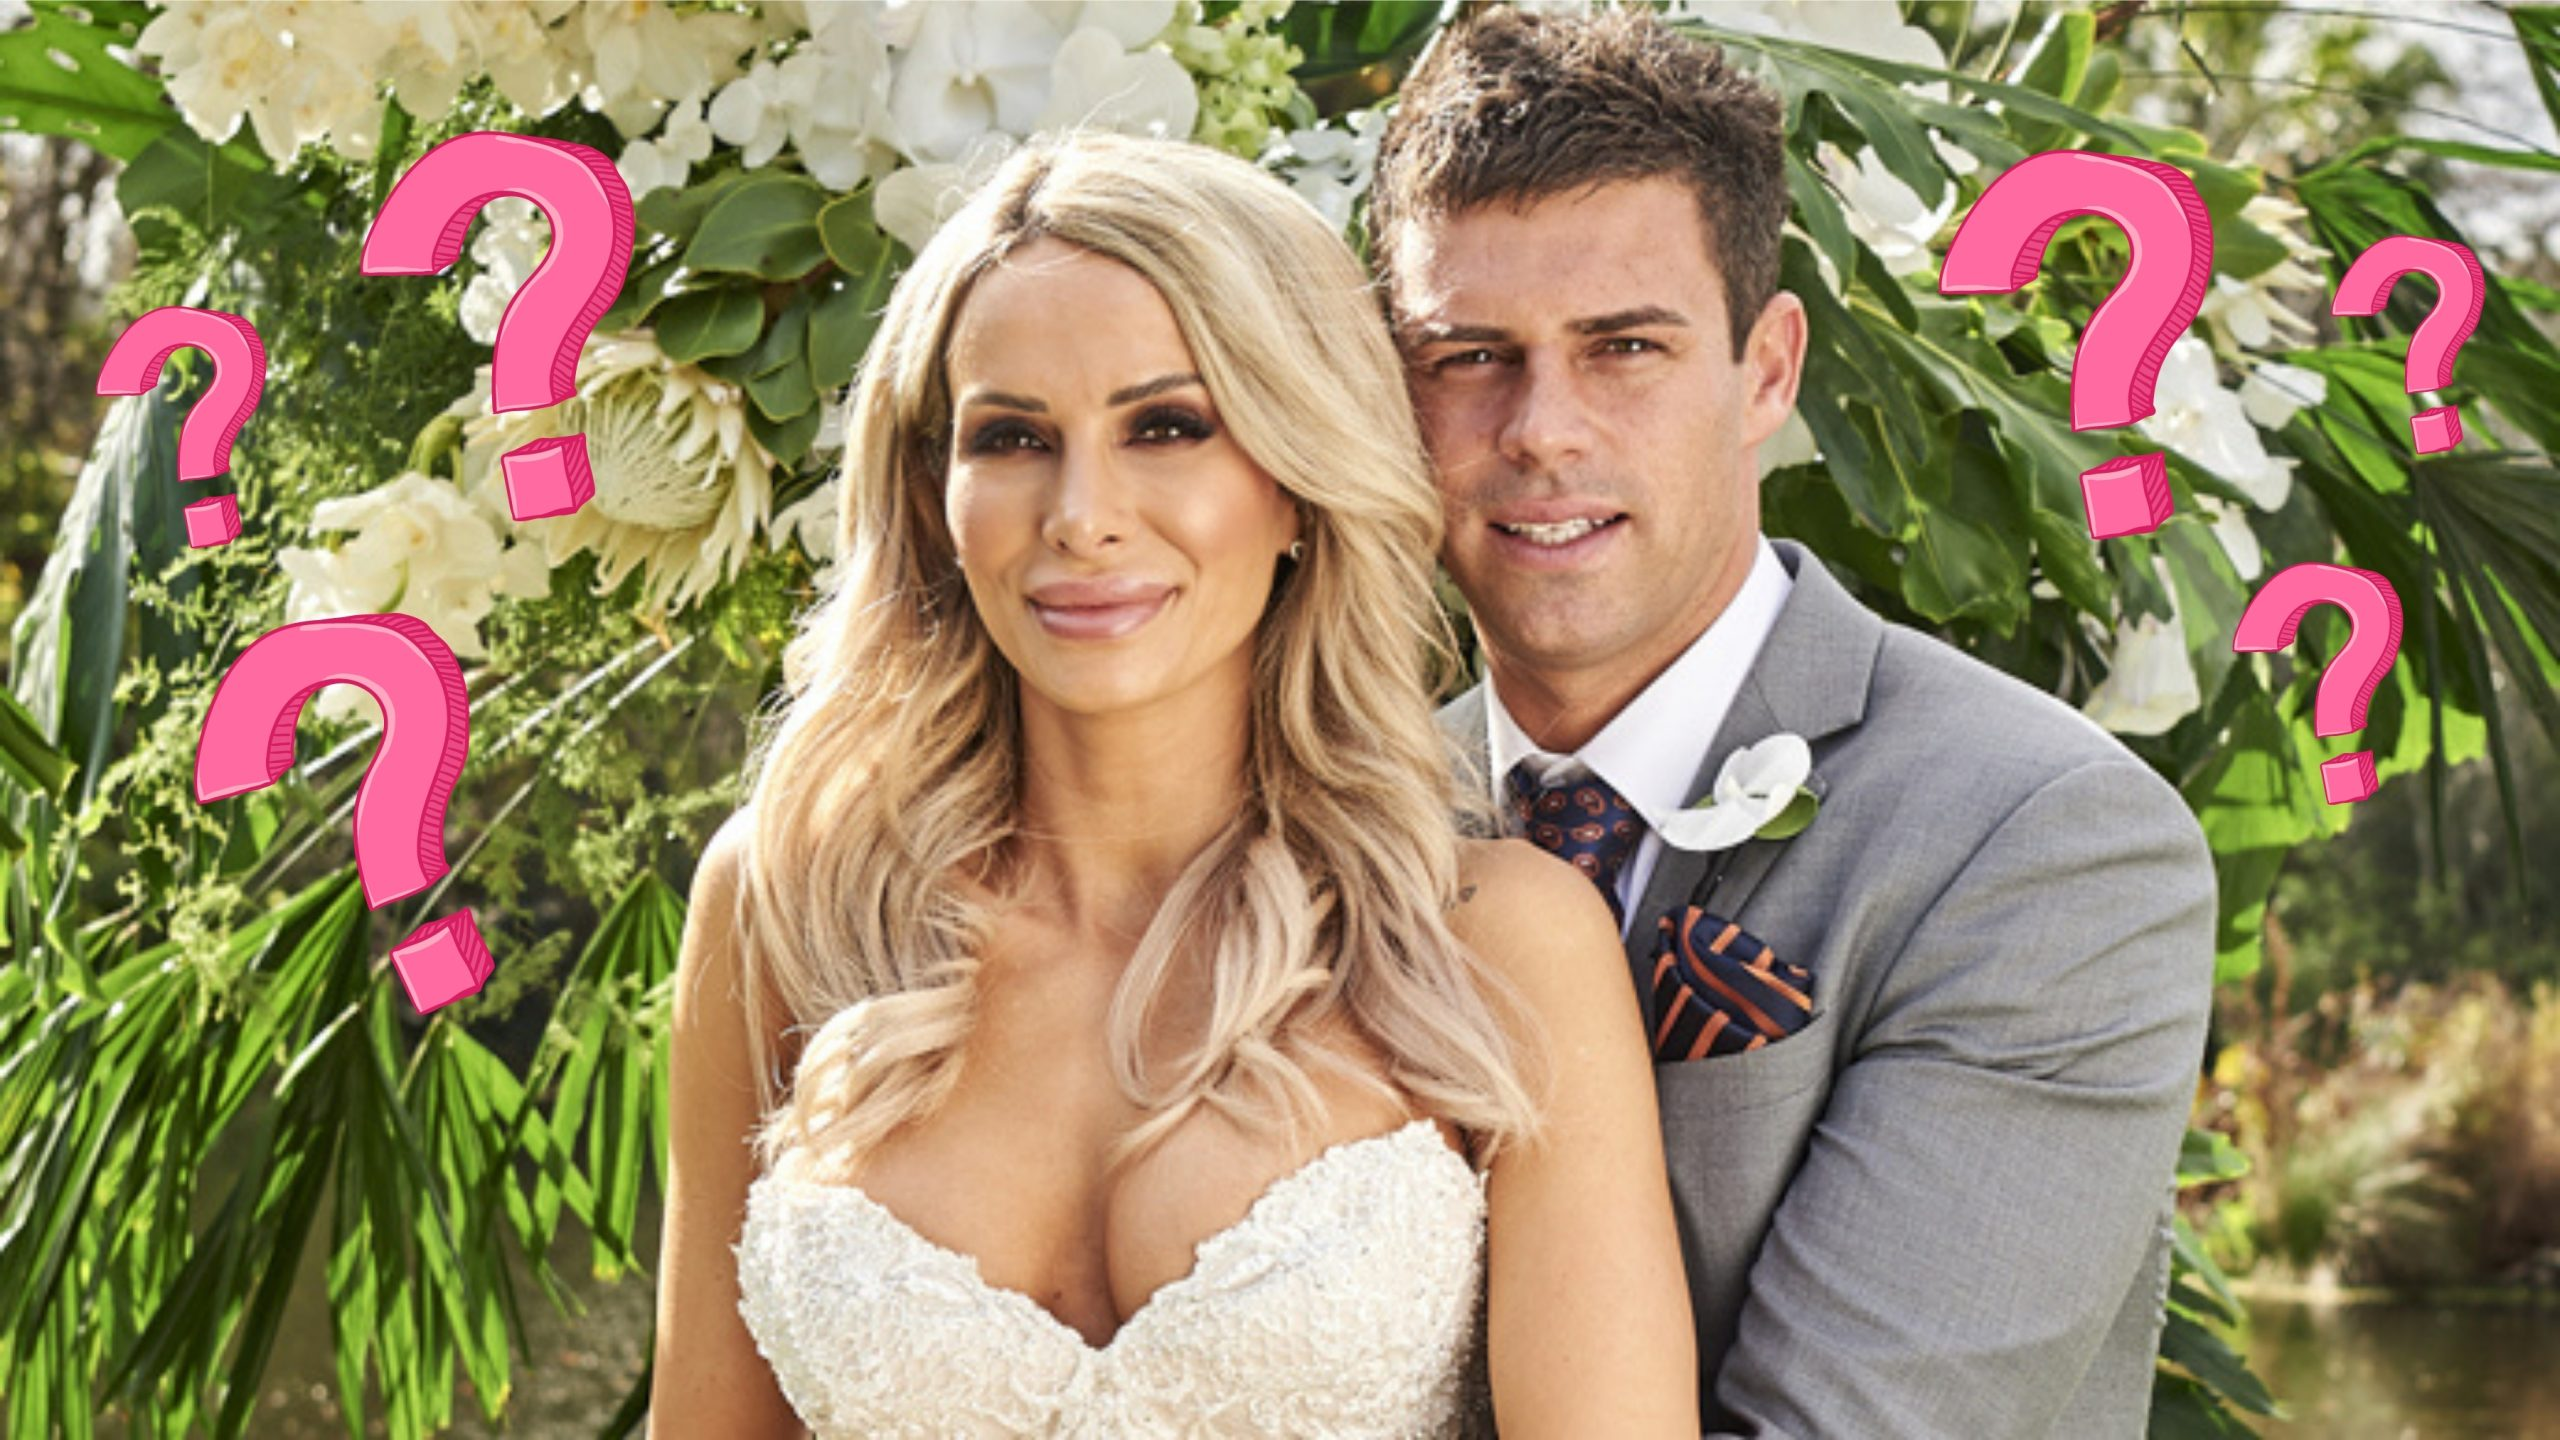 Married at First Sight season 7 stars KC Osbourne and Michael Goonan will be starring on the upcoming season of UK reality TV show Ex on The Beach. It turns out that they weren't the only Aussie MAFS couple approached for the series!